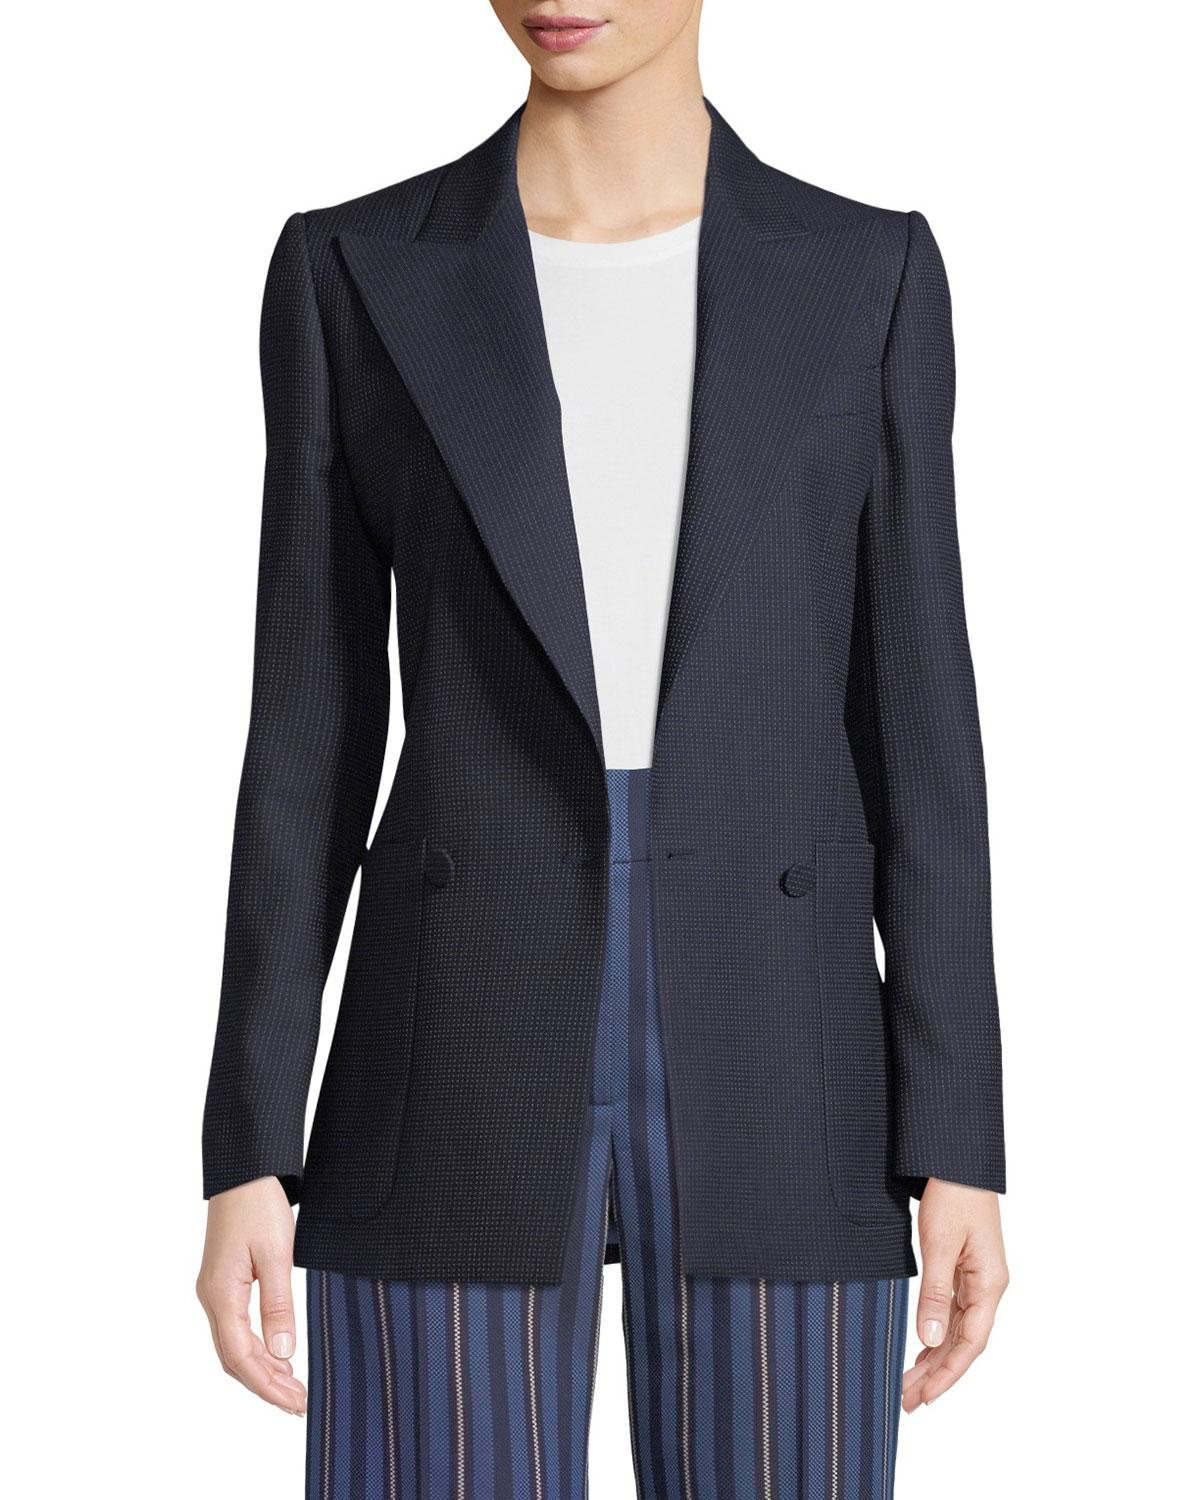 50b94fde0cb0 Lyst - Burberry Leamington Pindot Wool Single-button Jacket in Blue